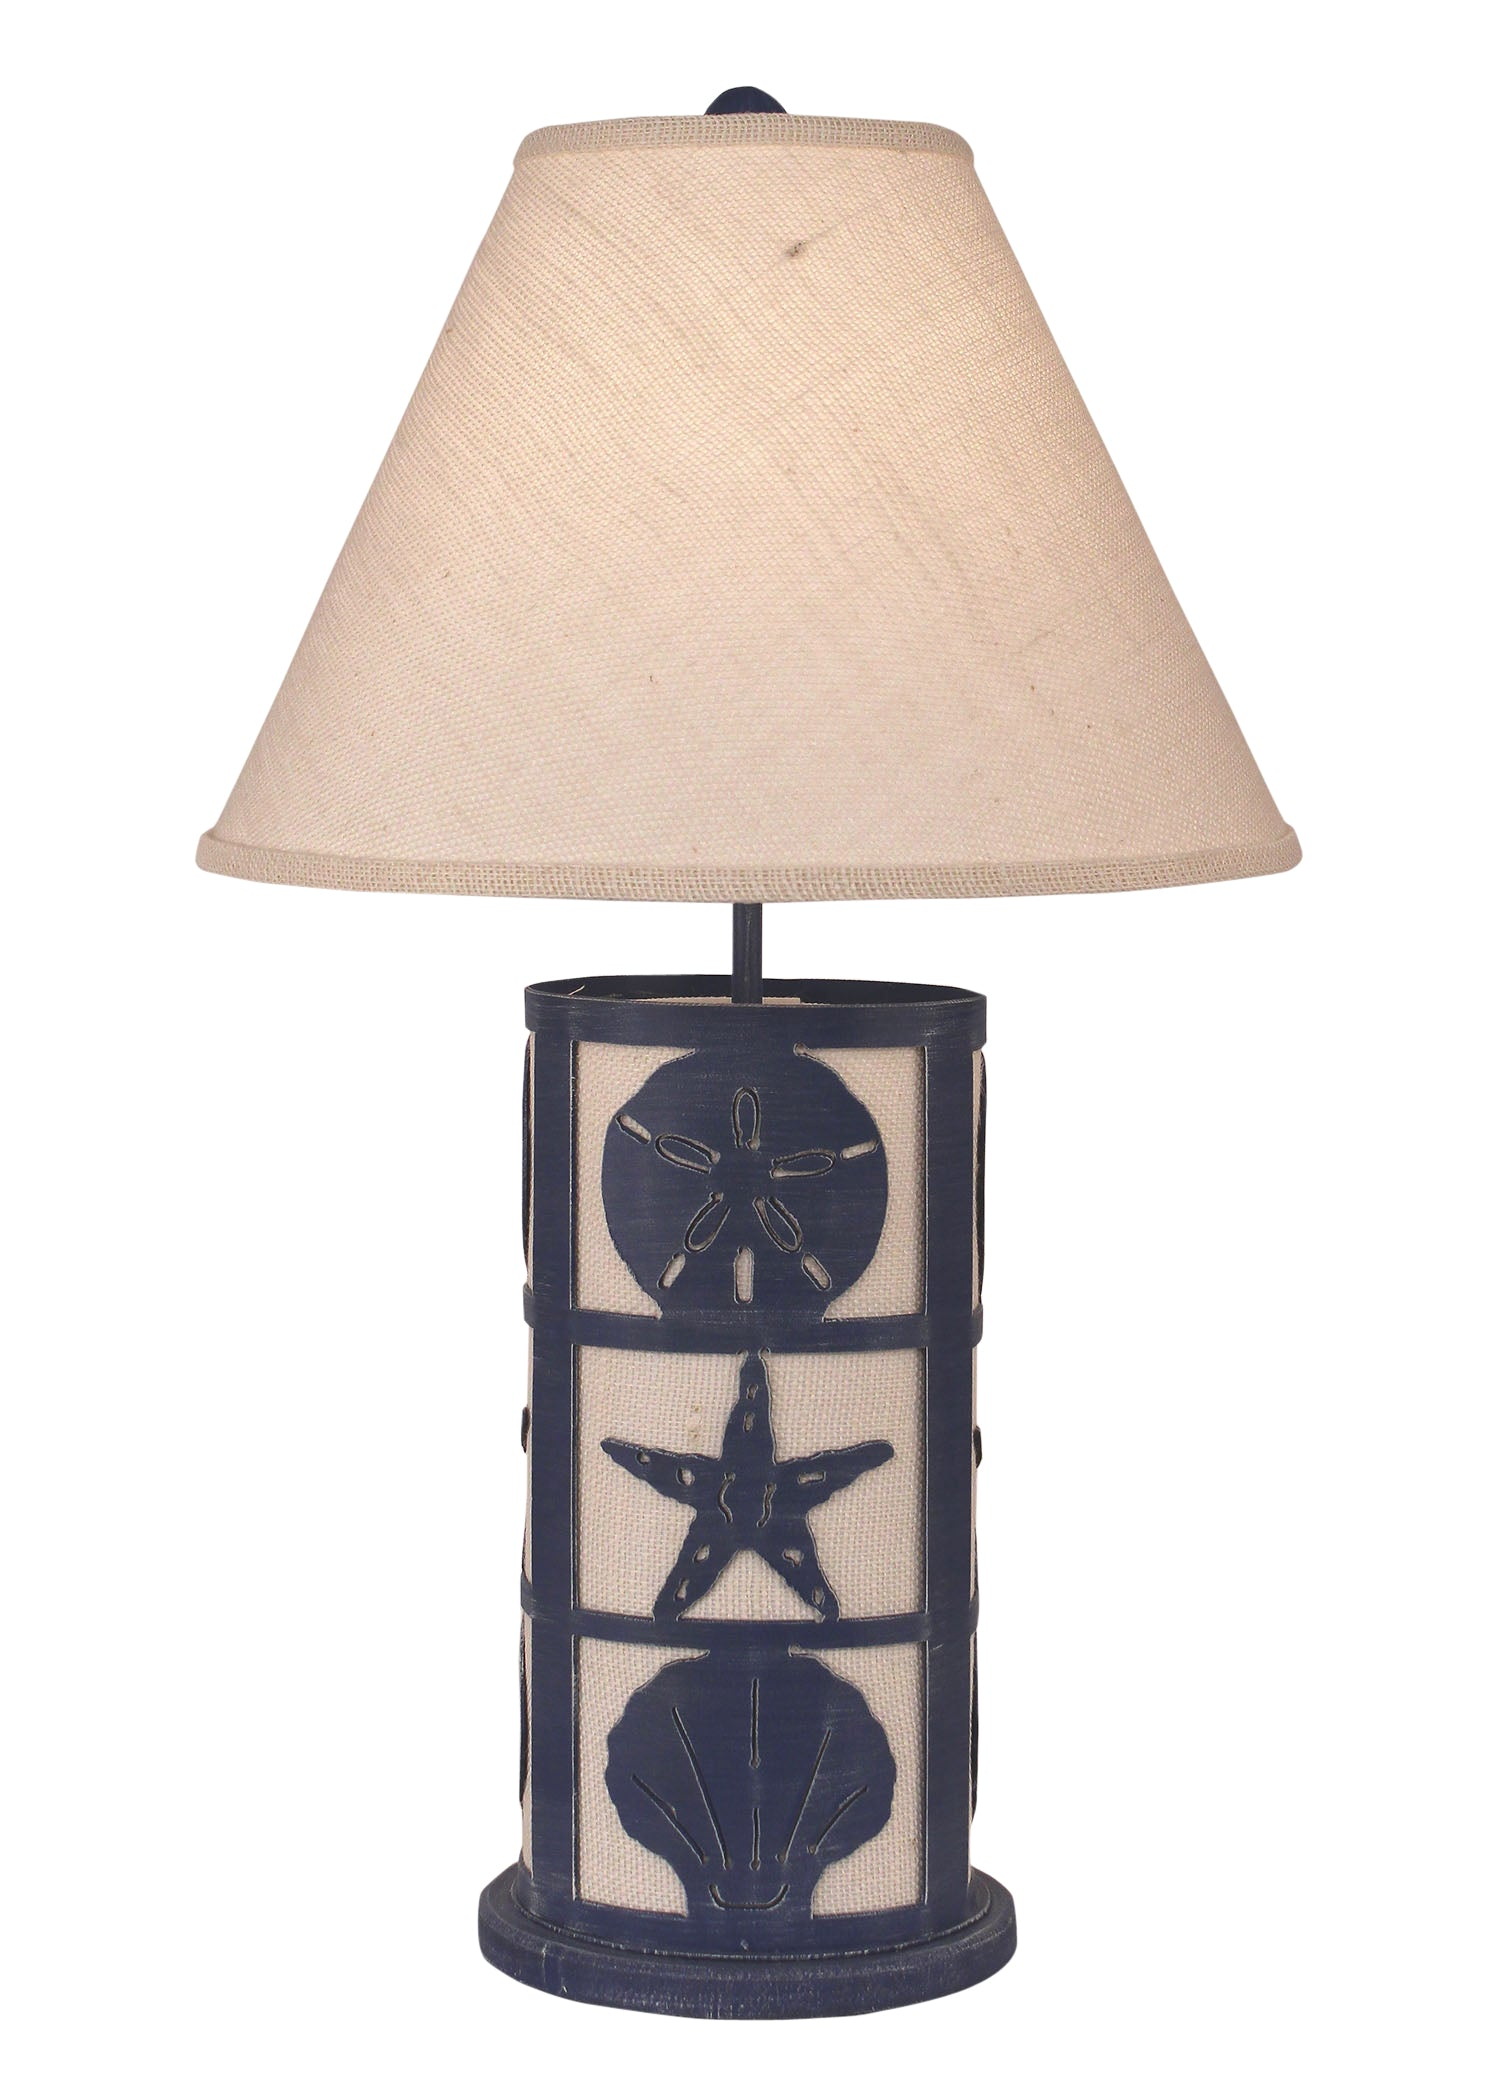 Morning Jewel Framed Shells Table Lamp w/ Night Light - Coast Lamp Shop